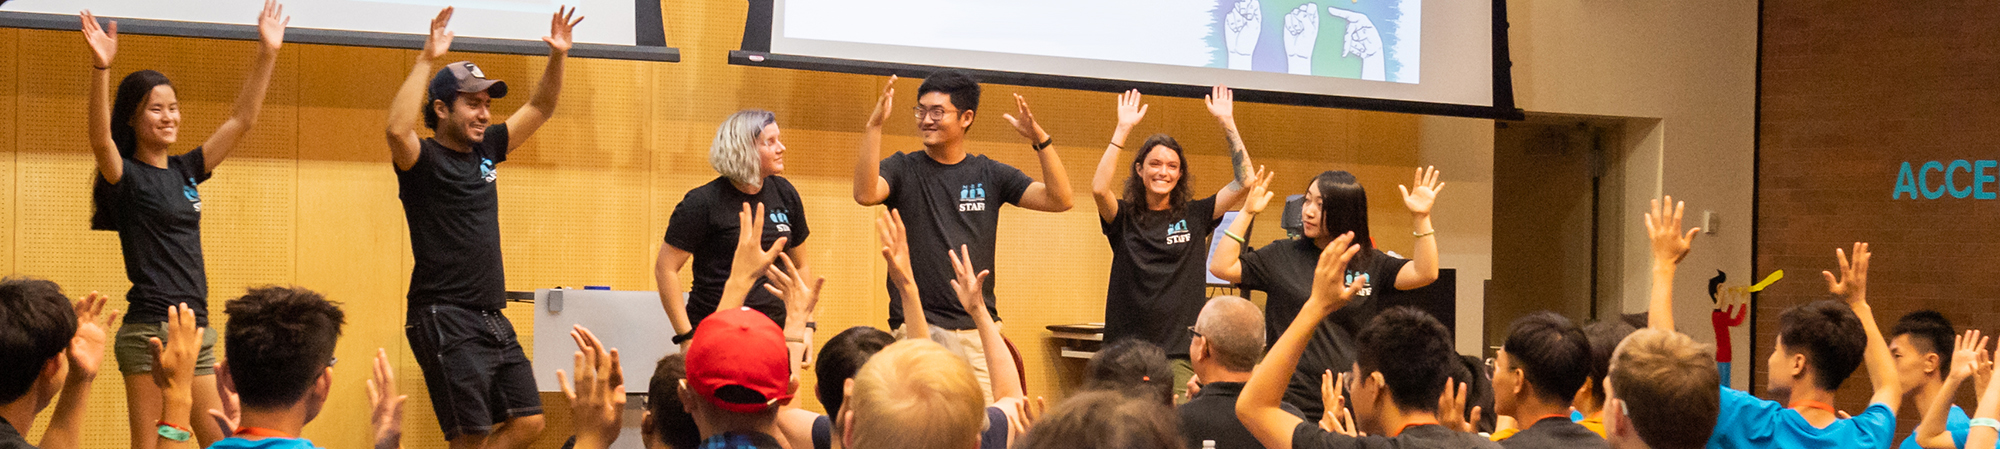 Students and instructors in auditorium with their hands up signing